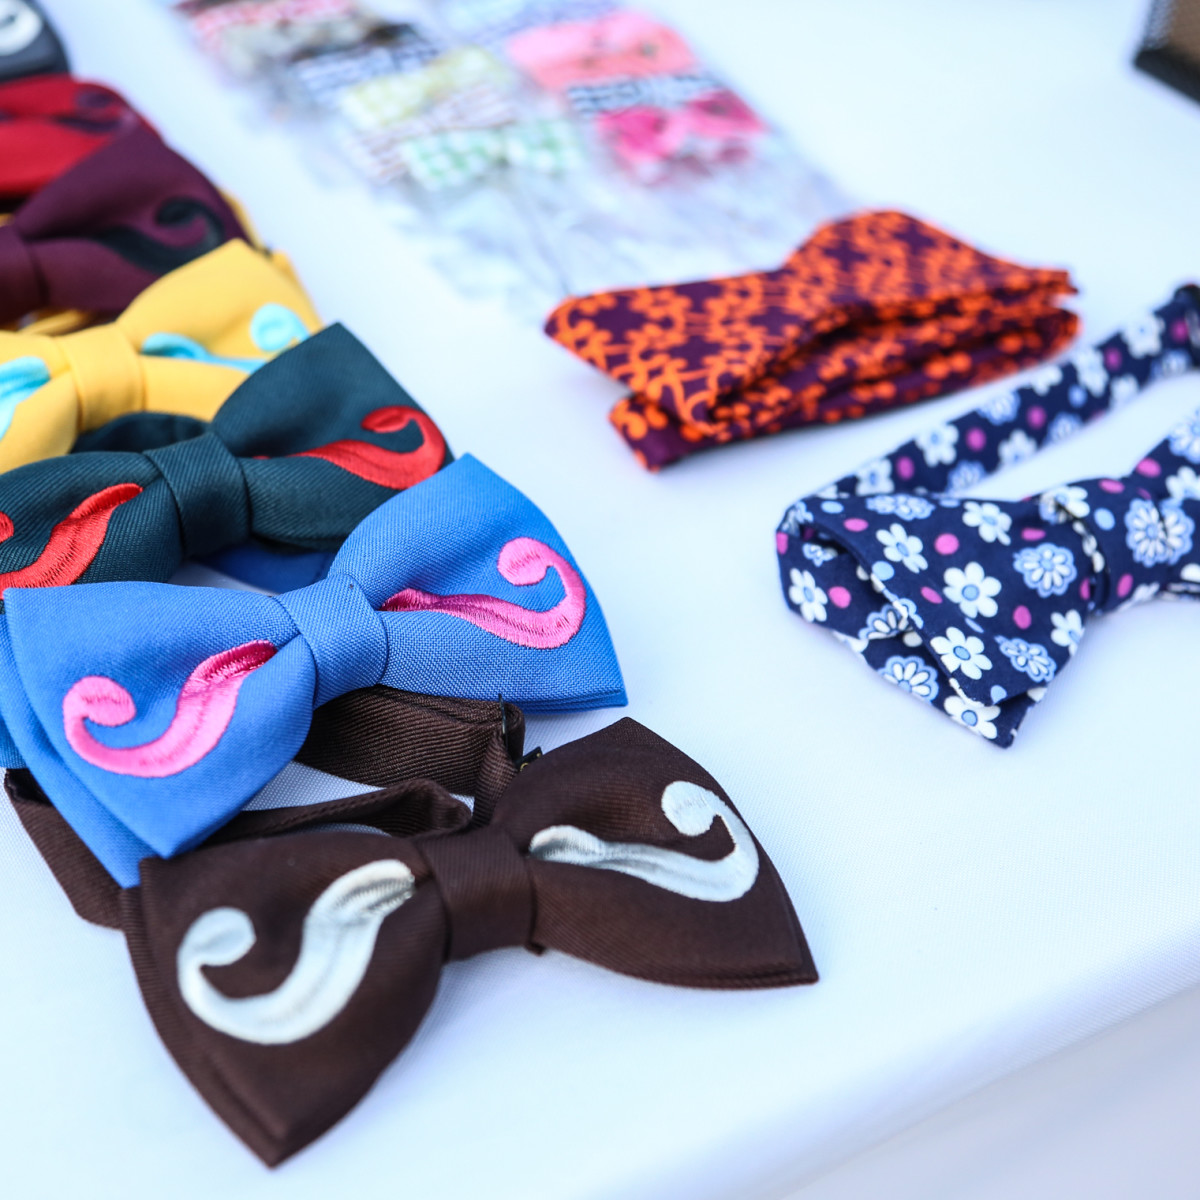 Fashion X Austin Men's Event 2015 In My Closet Men's Clothing Mustache Bowtie